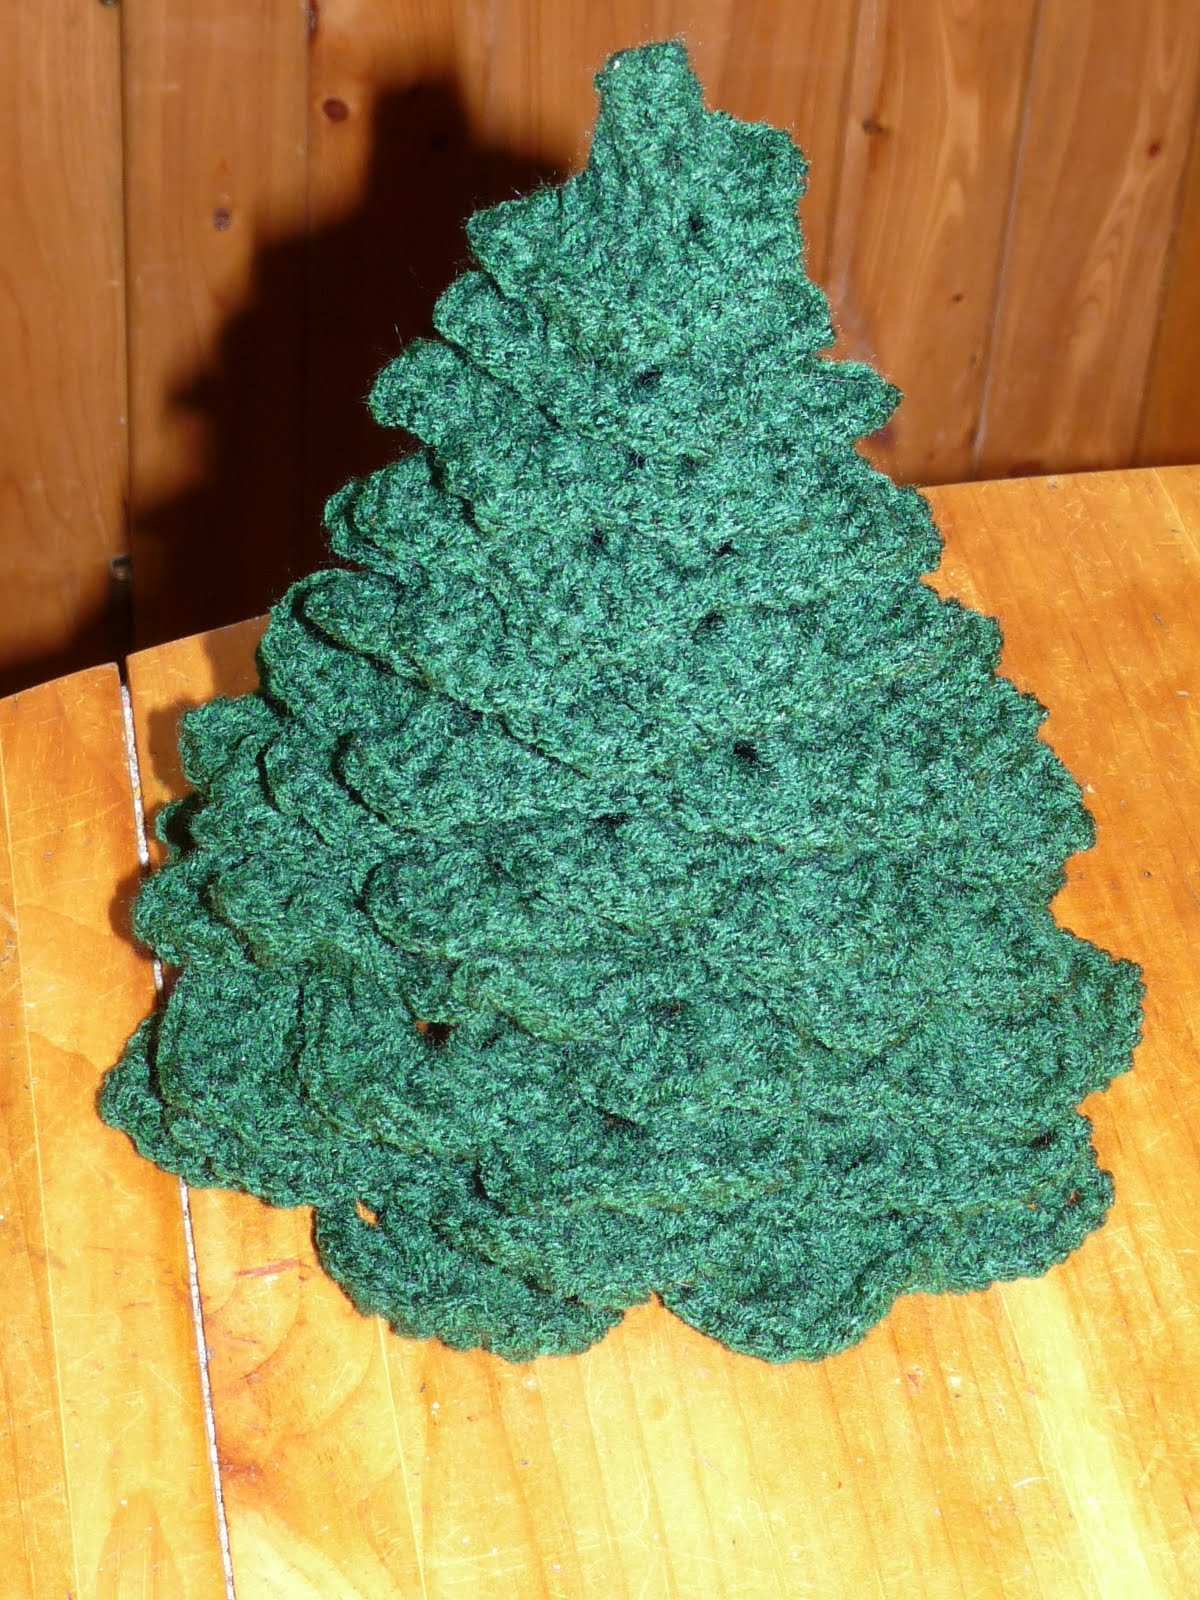 Best Of Crochet Christmas Tree Pattern Finished Tree Free Crochet Christmas Tree ornament Patterns Of Awesome 44 Ideas Free Crochet Christmas Tree ornament Patterns